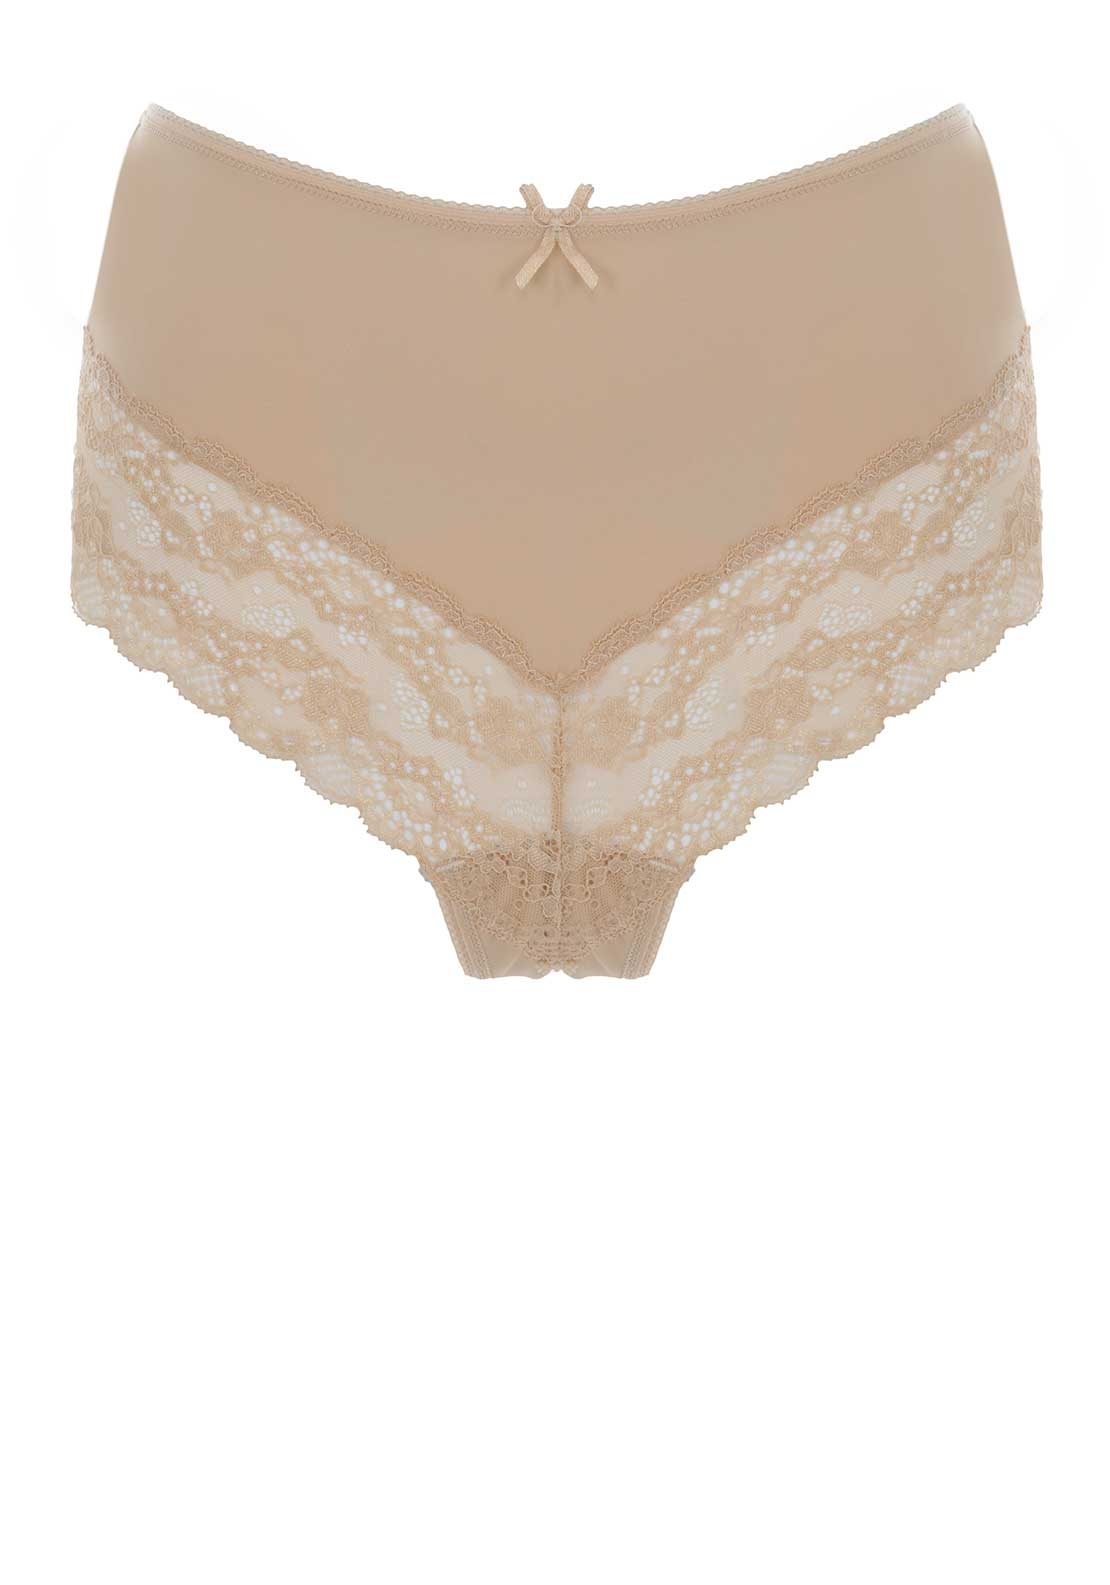 Loving Moments Lace Trim Briefs, Nude